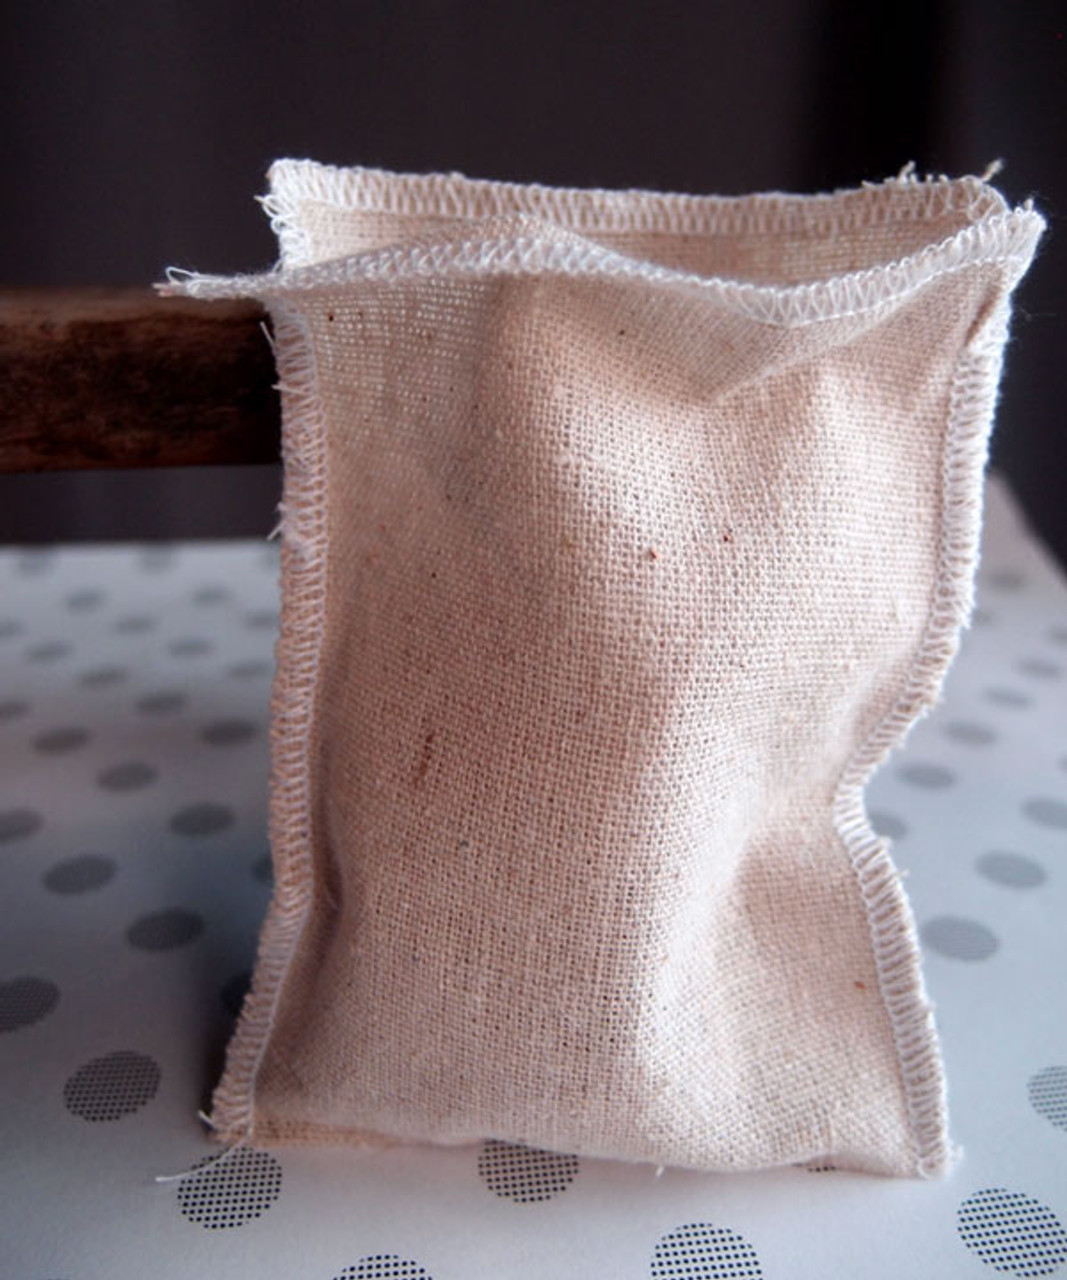 Linen Pouch with White Serged Edge (3 sizes)